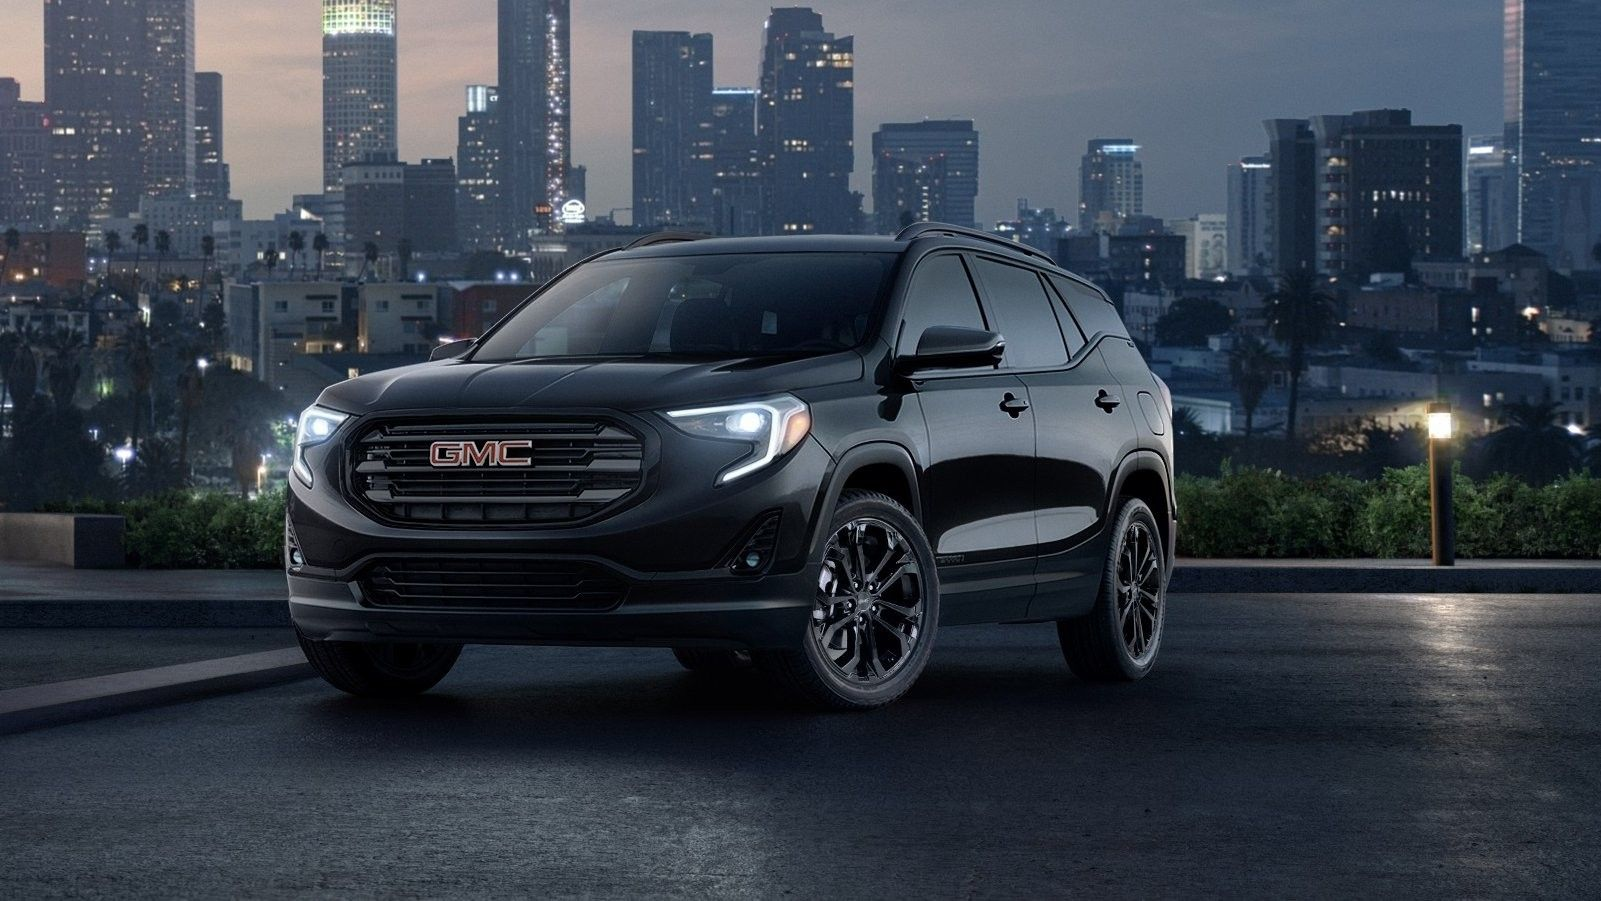 2019 GMC Suv Review, specs and Release date Gmc terrain